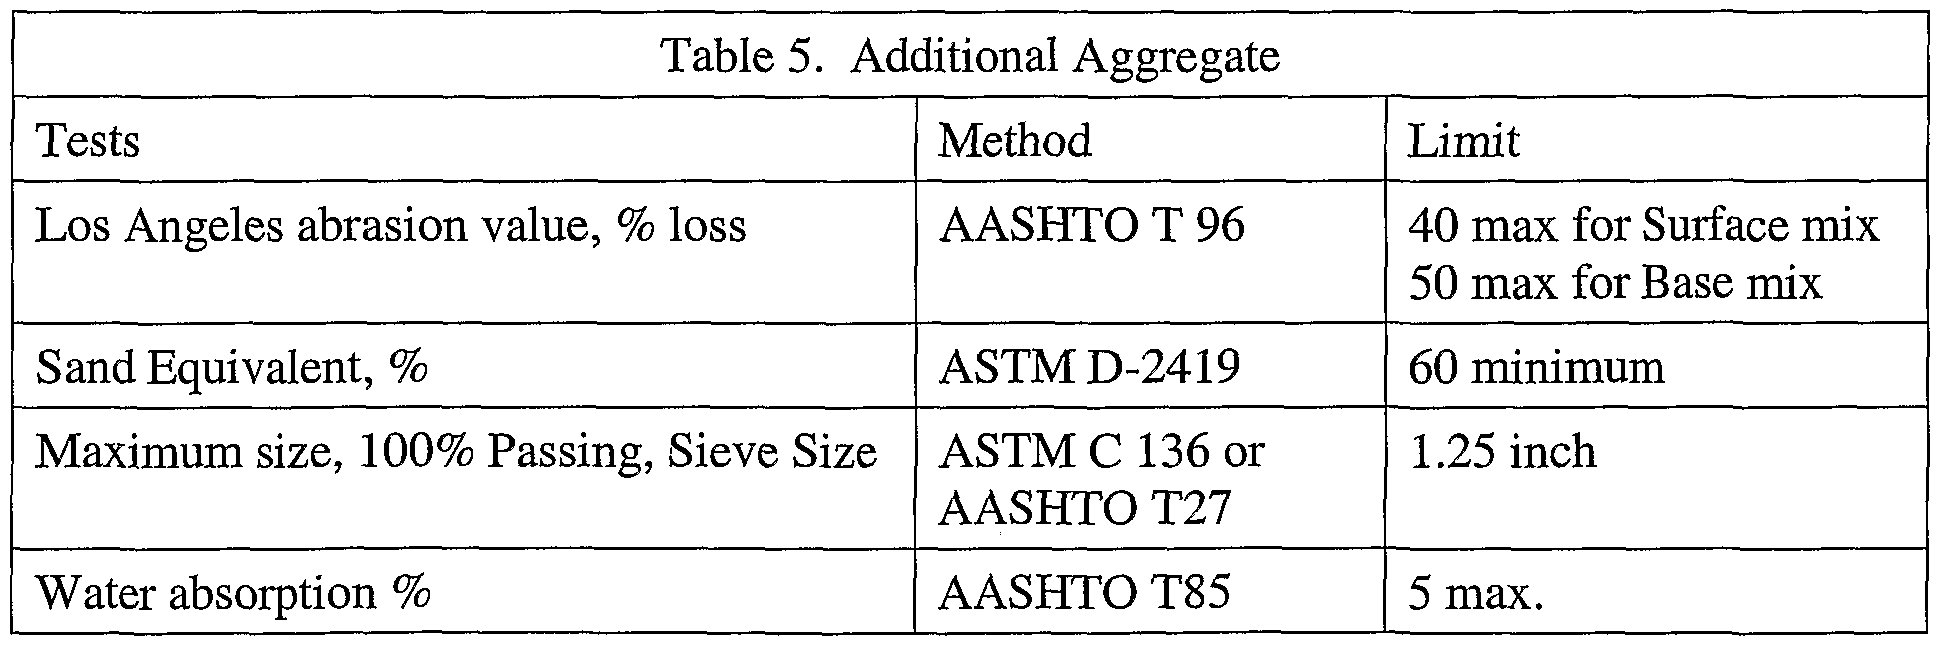 Astm D2041 Download